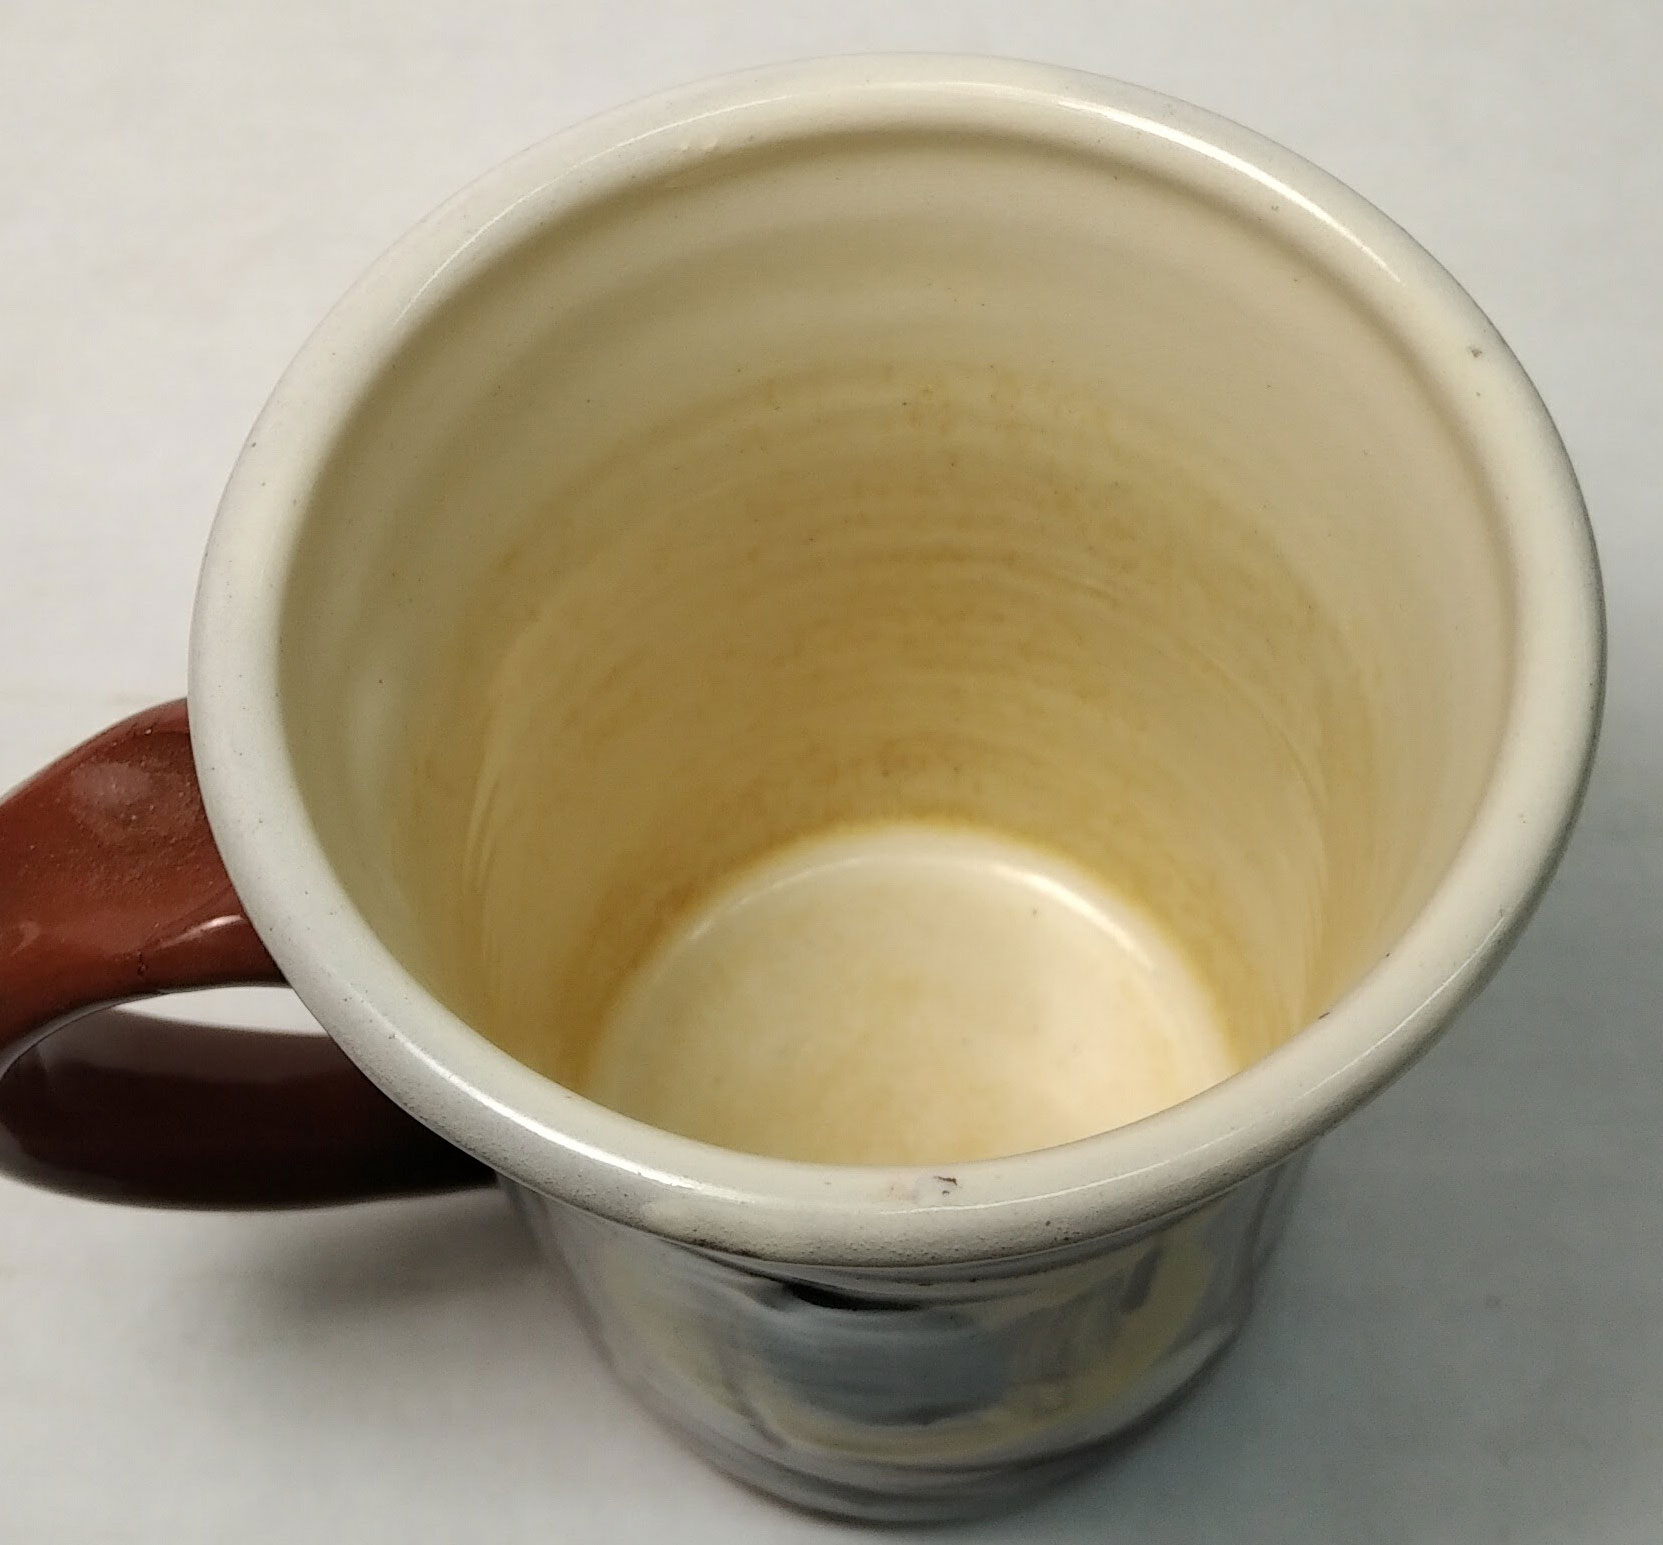 Glaze is coffee-staining and leaching after two years. Is it toxic?